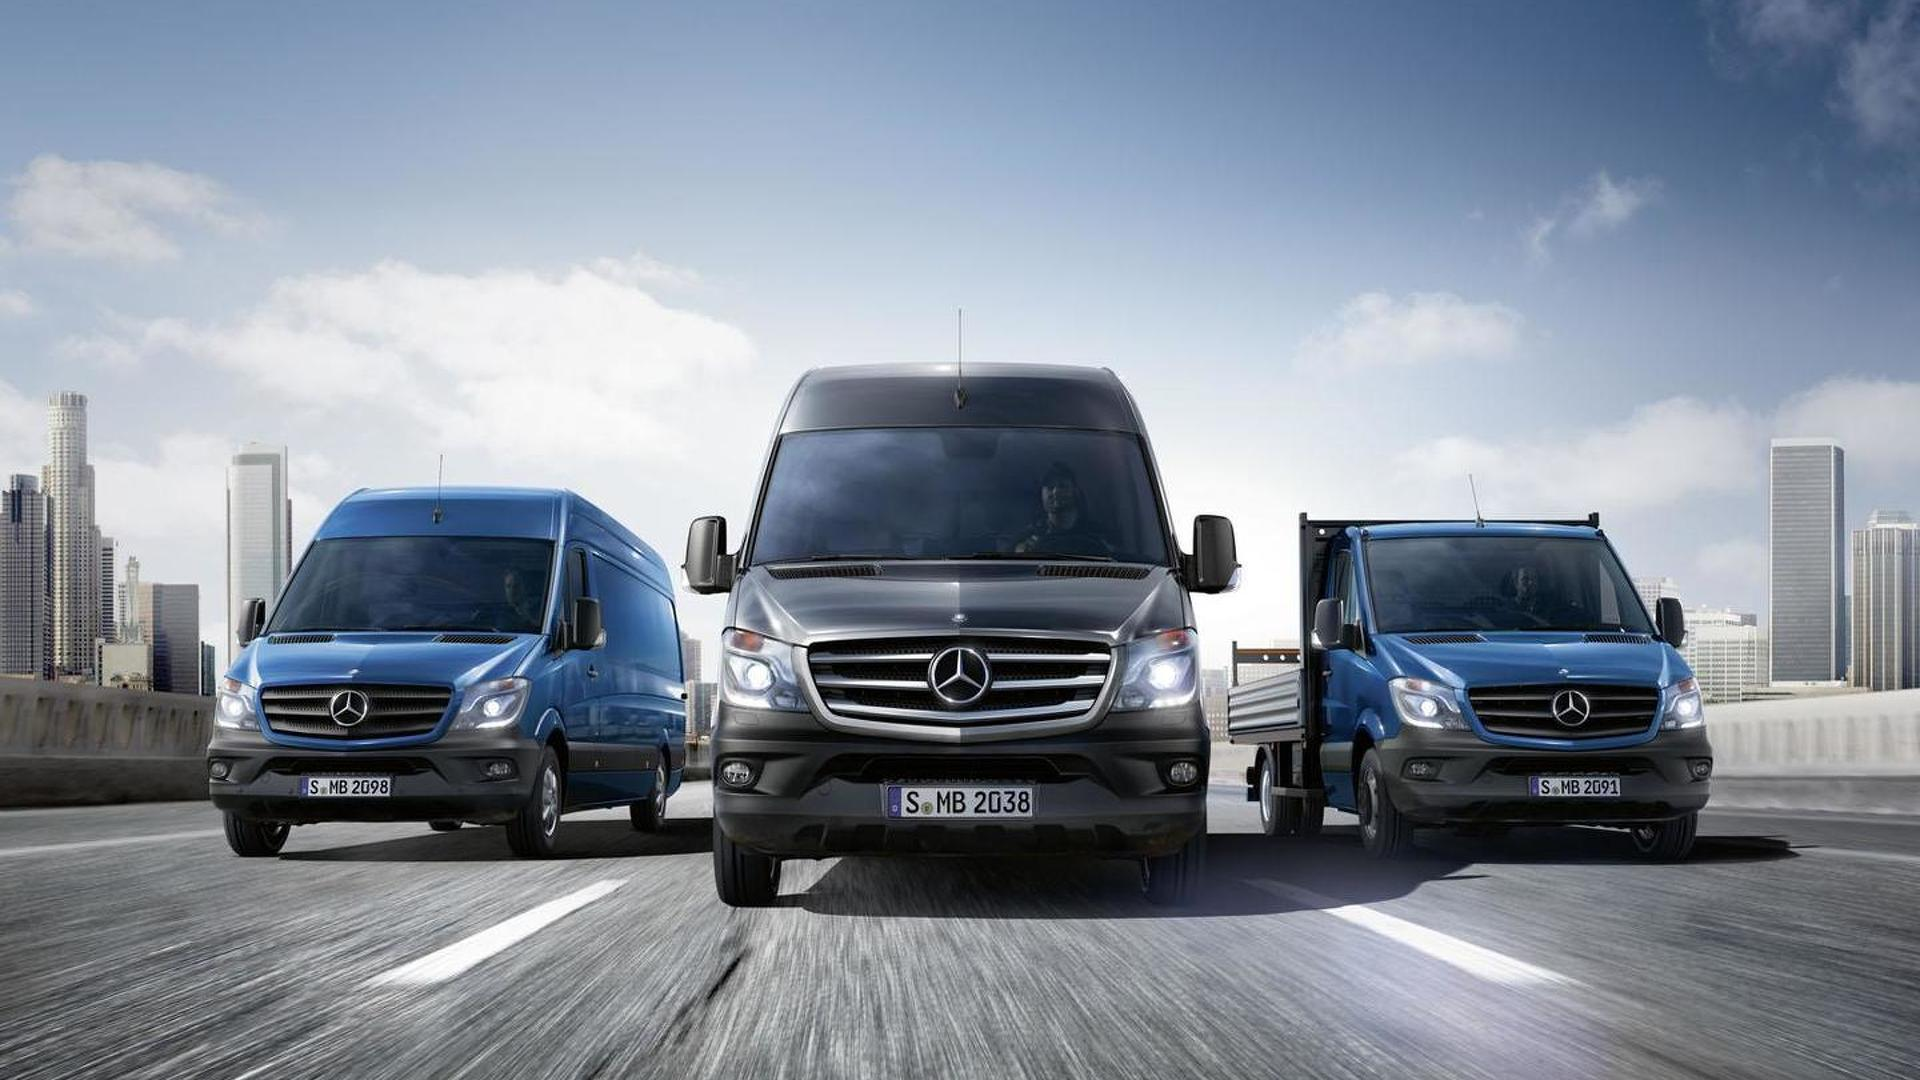 2014 Mercedes Sprinter unveiled